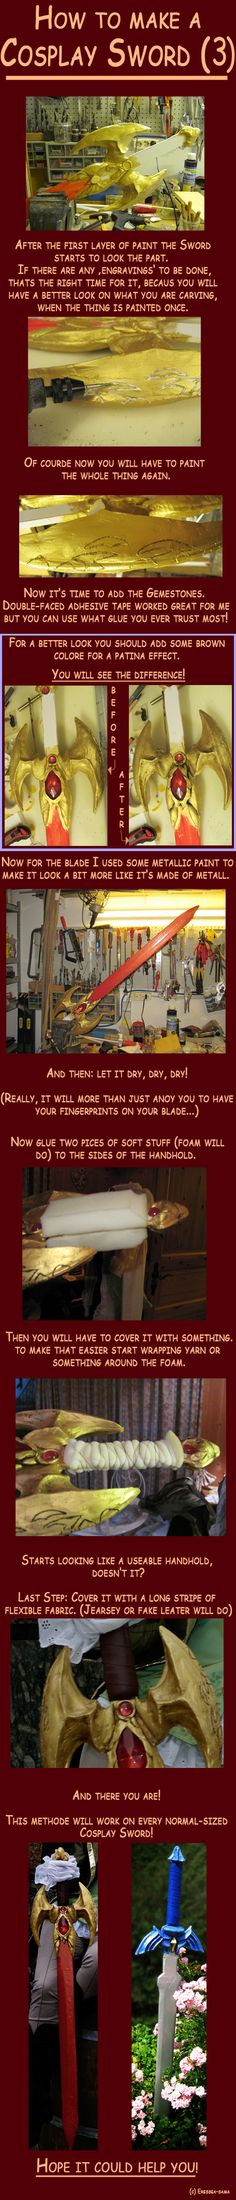 How to make a Cosplay Sword 3 by *Eressea-sama on deviantART